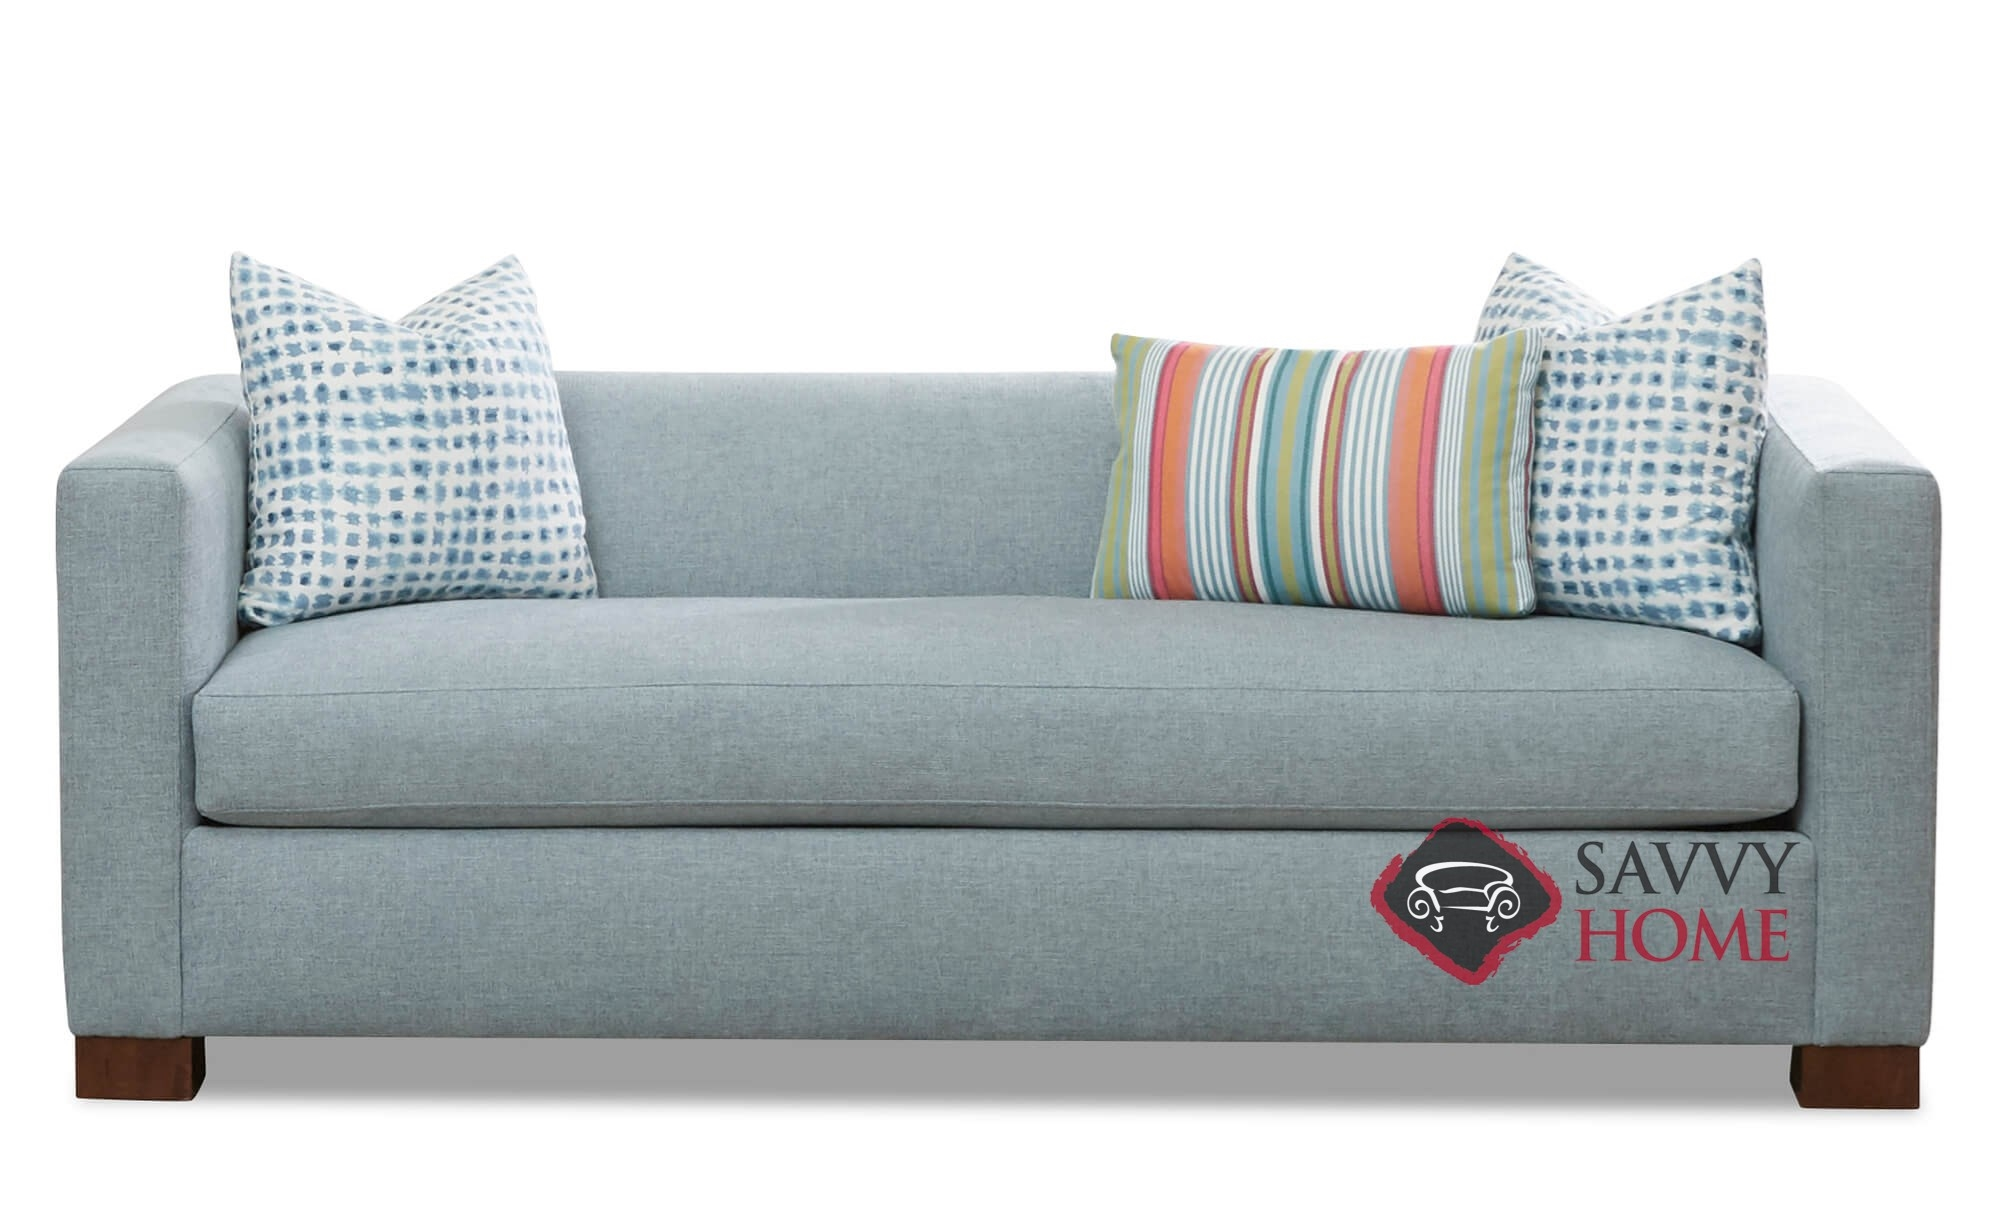 Rochester Fabric Sleeper Sofas Full By